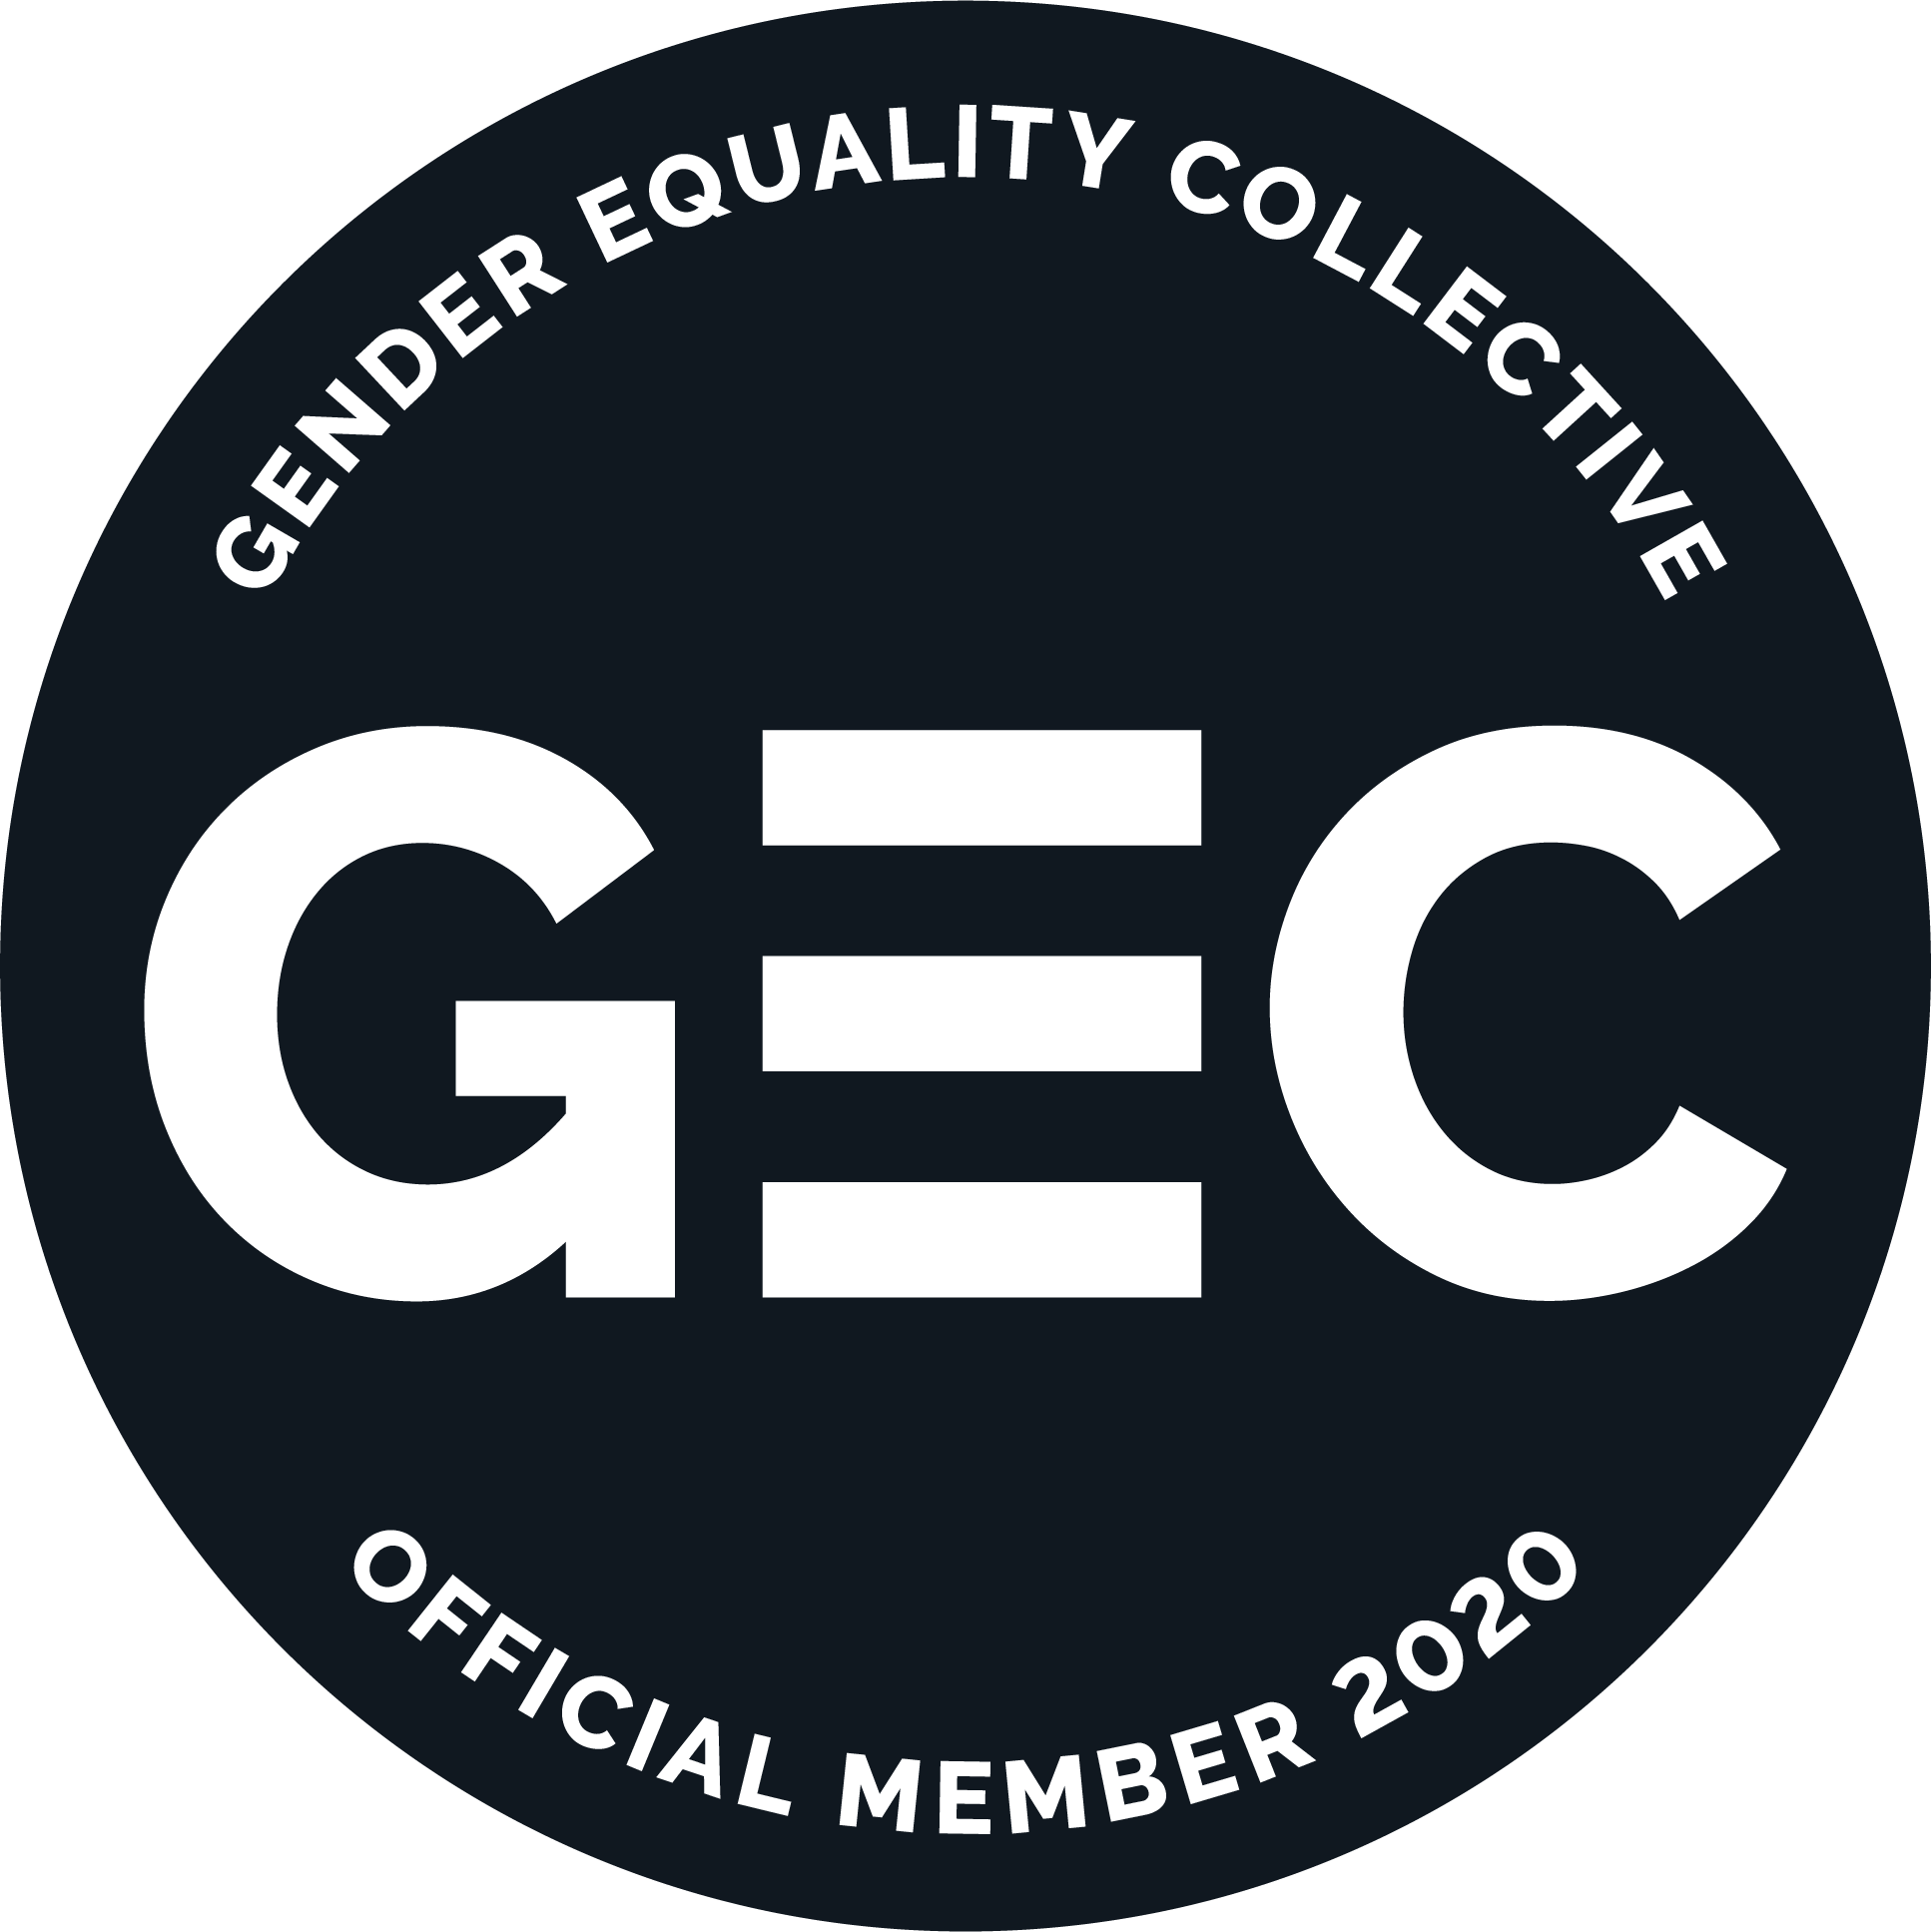 Gender Equality Collective